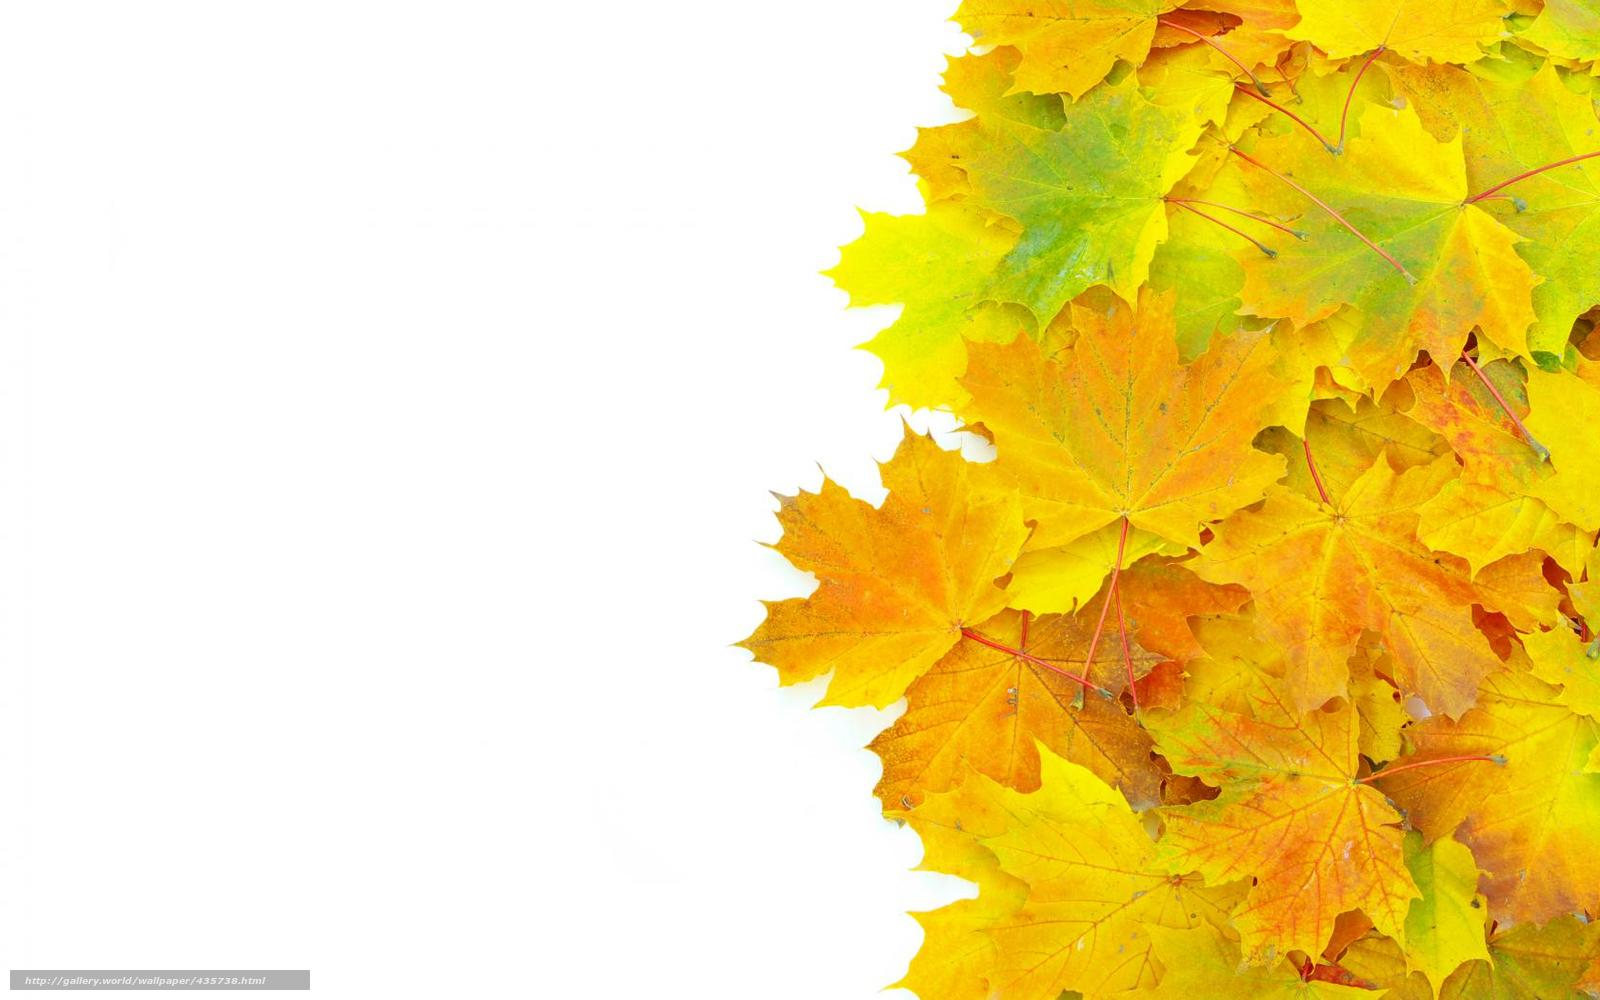 Download wallpaper leaves, veins, transparency free desktop ...